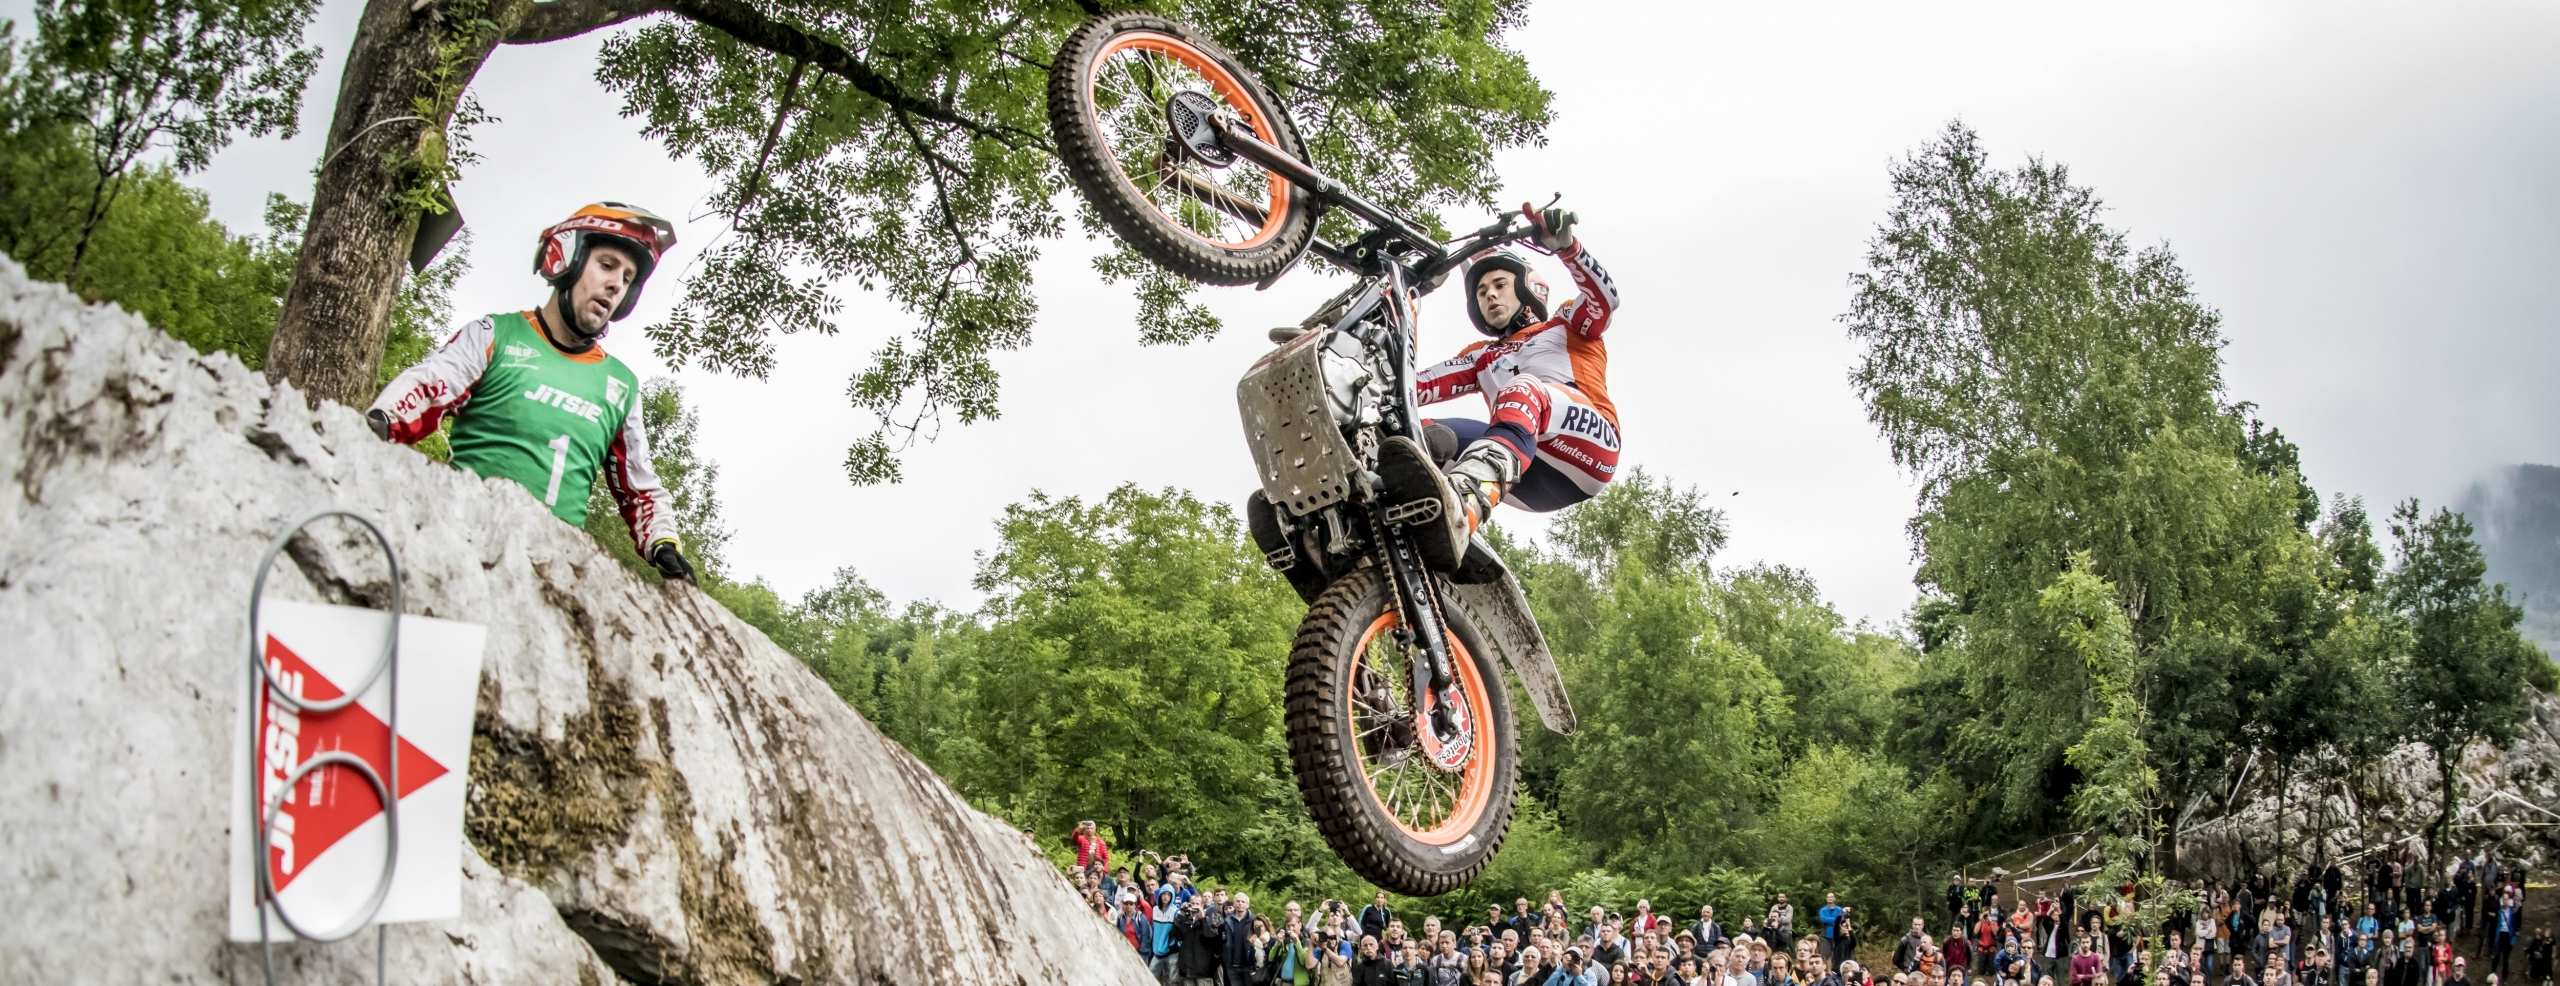 Brilliant win for Toni Bou in the French TrialGP